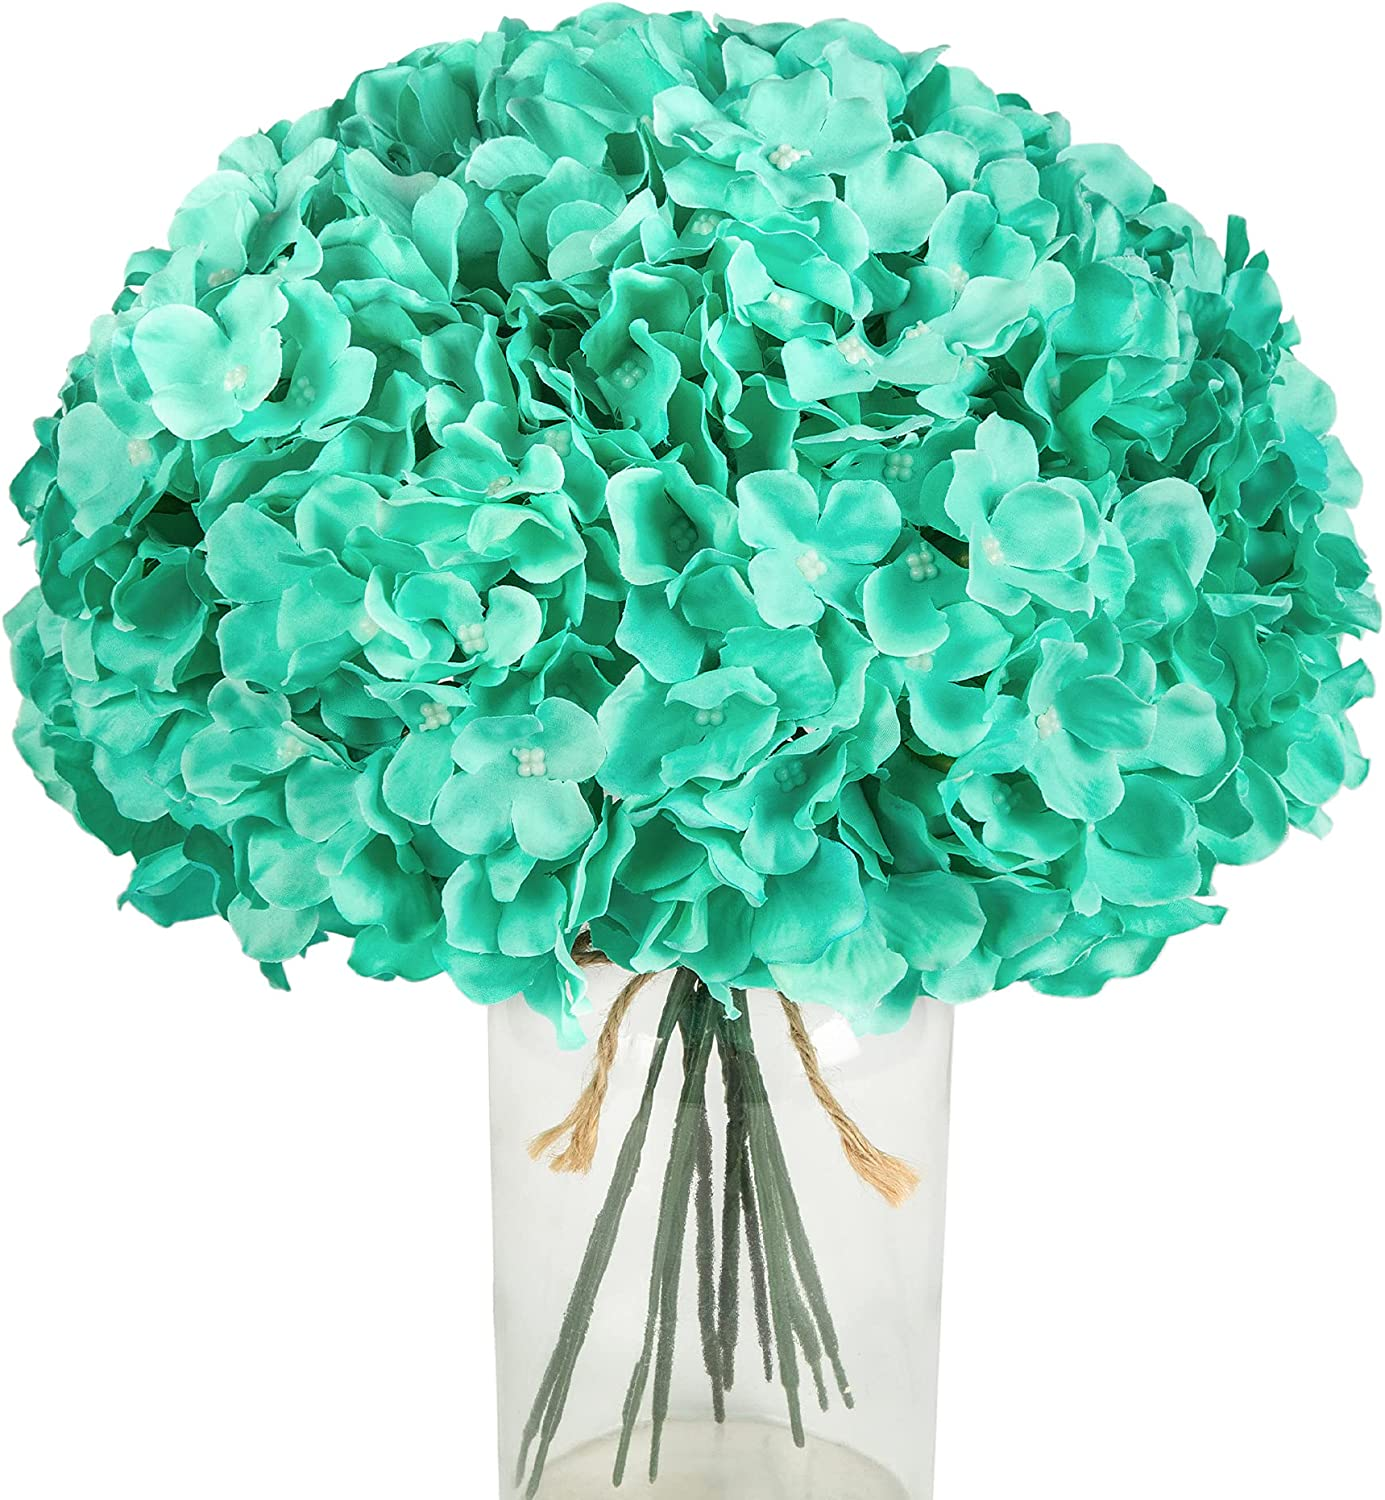 PaoriPets 10pcs Hydrangea Silk Flowers Heads with Stems Artificial Hydrangea Flowers for Wedding Home Party Baby Shower Decor (Tiffany Blue)